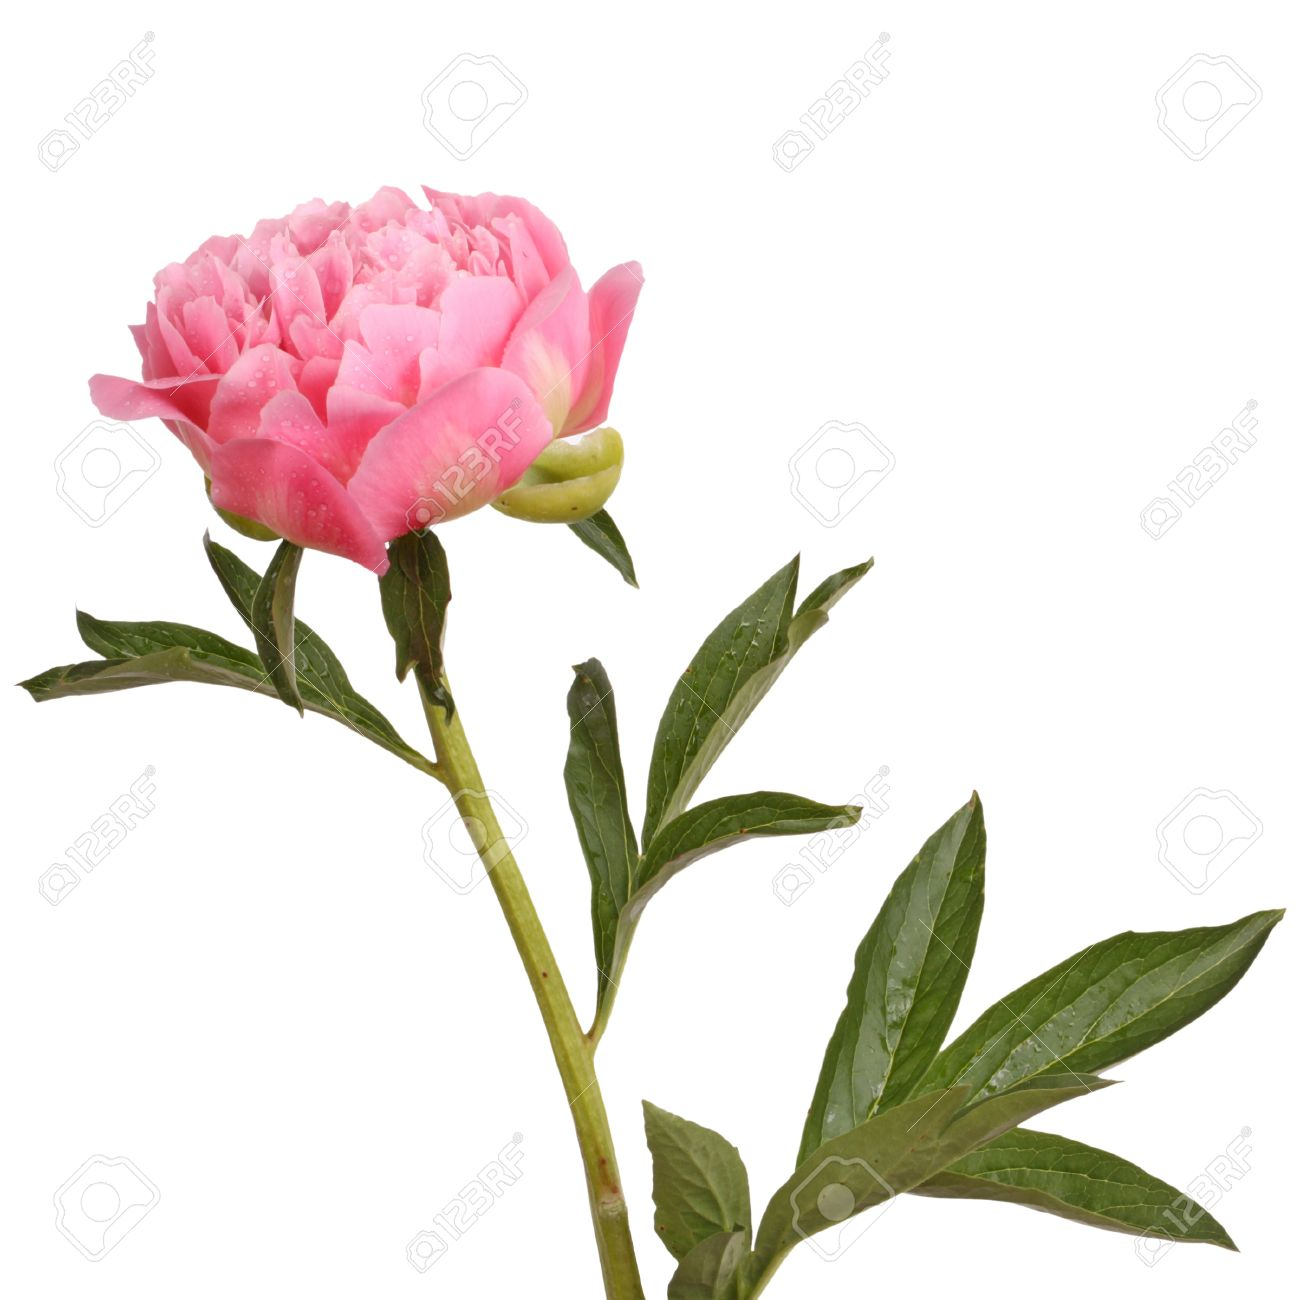 One double flower stem and leaves of a a pink peony paeonia one double flower stem and leaves of a a pink peony paeonia lactiflora against mightylinksfo